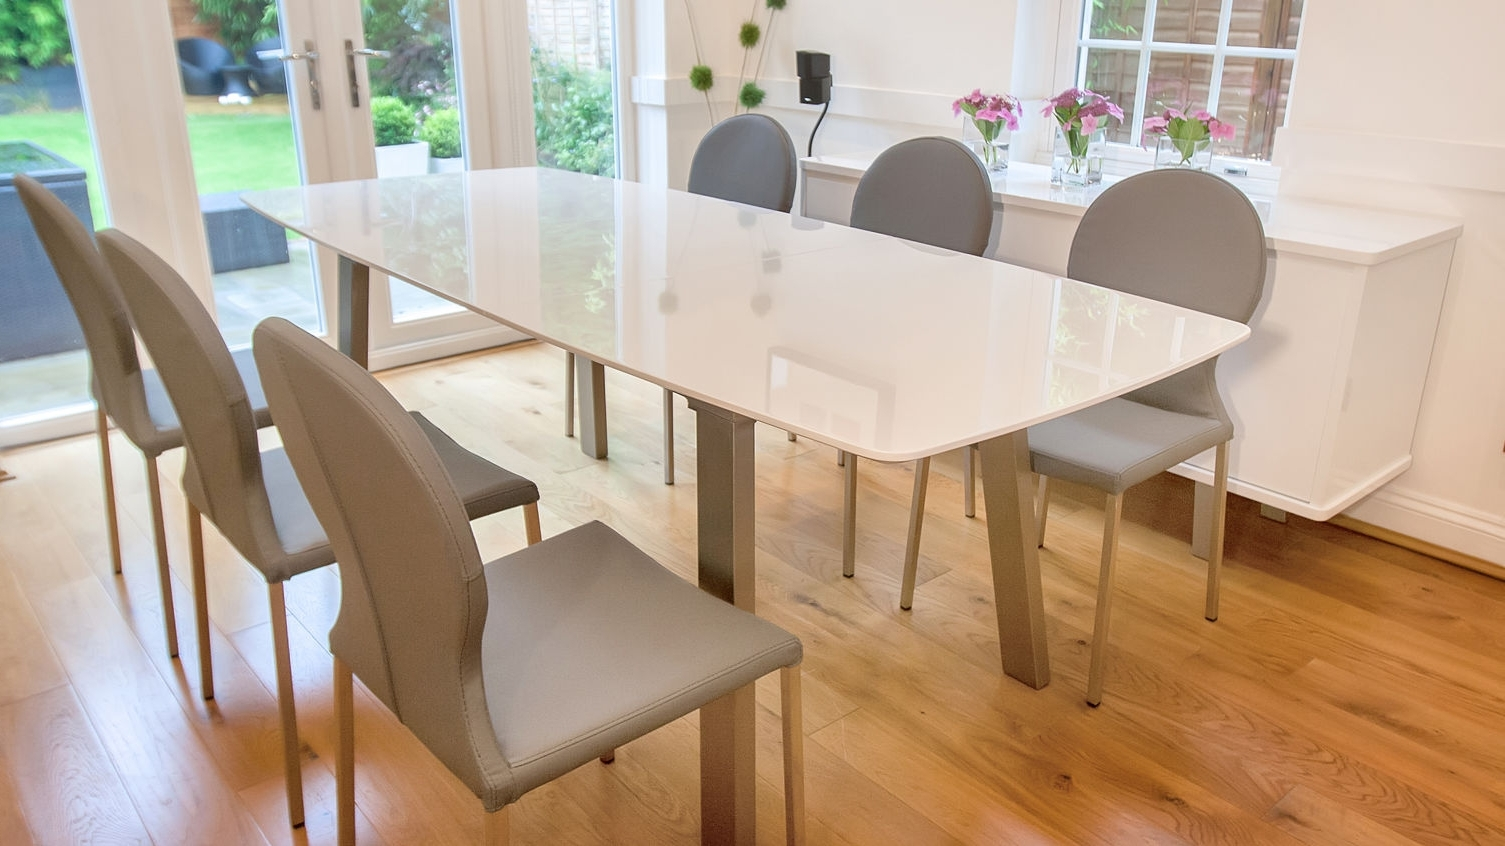 Extending Dining Room Tables And Chairs Dining Room Chair Slipcovers intended for Most Up-to-Date Extending Dining Table And Chairs